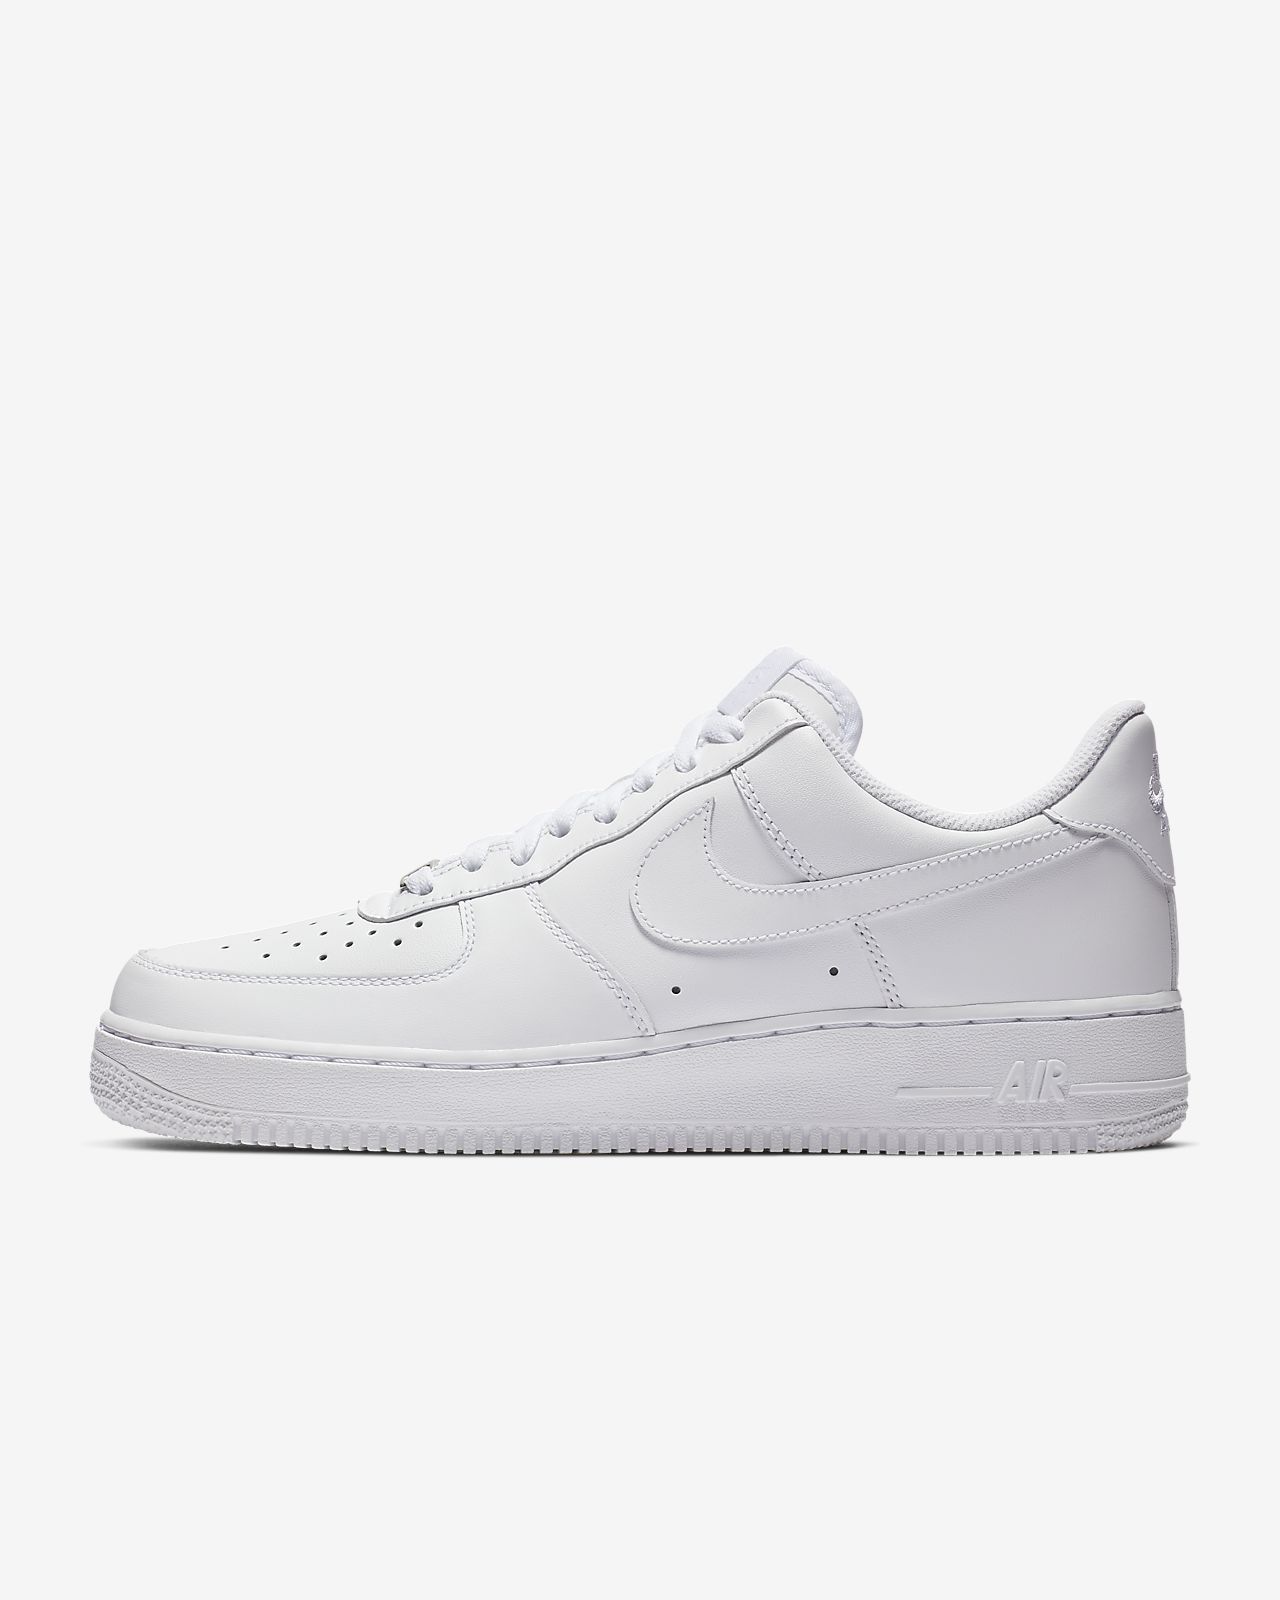 Nike Air Force 1 </div>